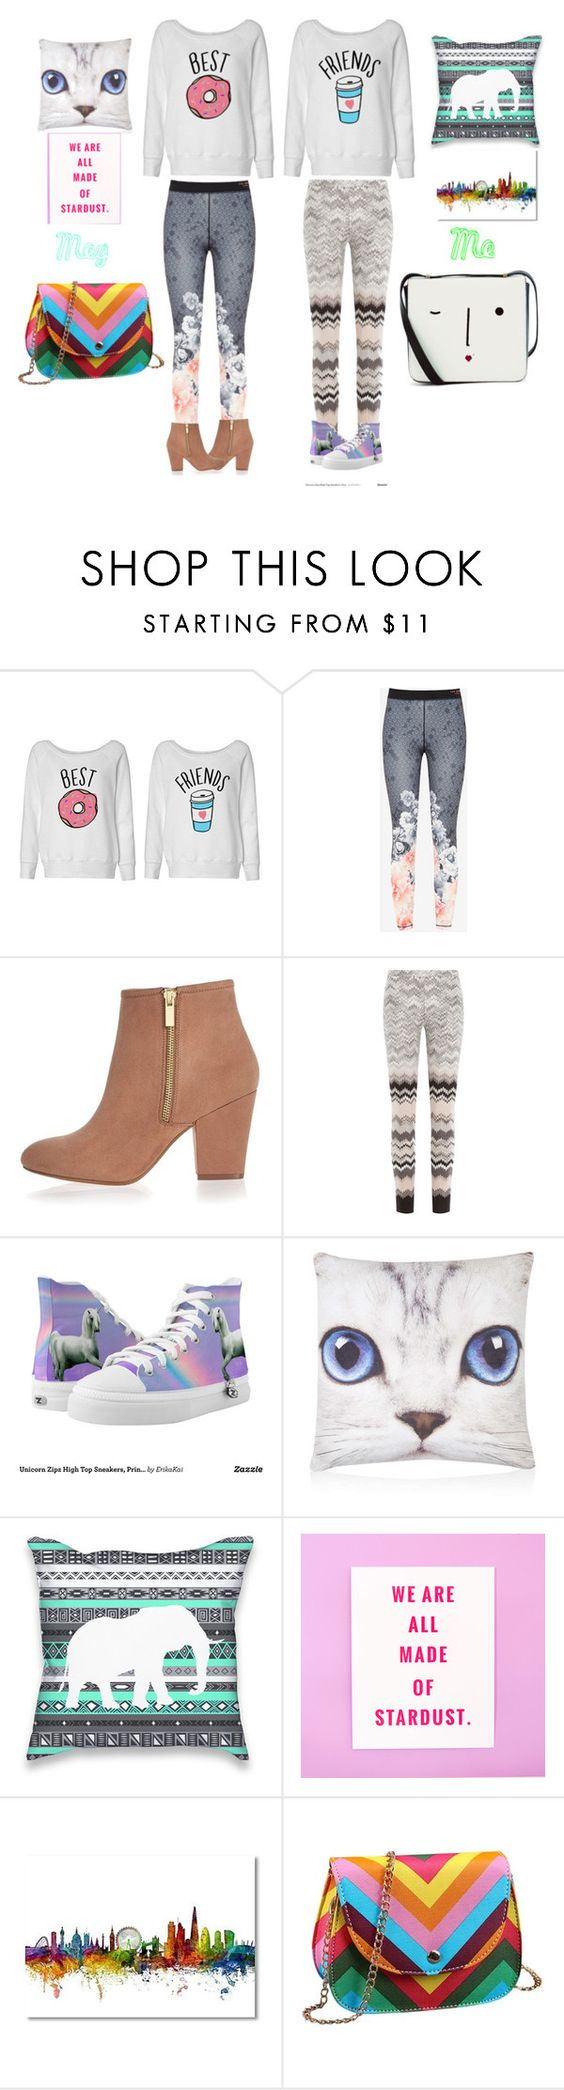 """Untitled #103"" by rebeccathehufflepuff ❤ liked on Polyvore featuring Ted Baker, River Island, Missoni, Zipz, Topshop, Lulu Guinness, women's clothing, women, female and woman"